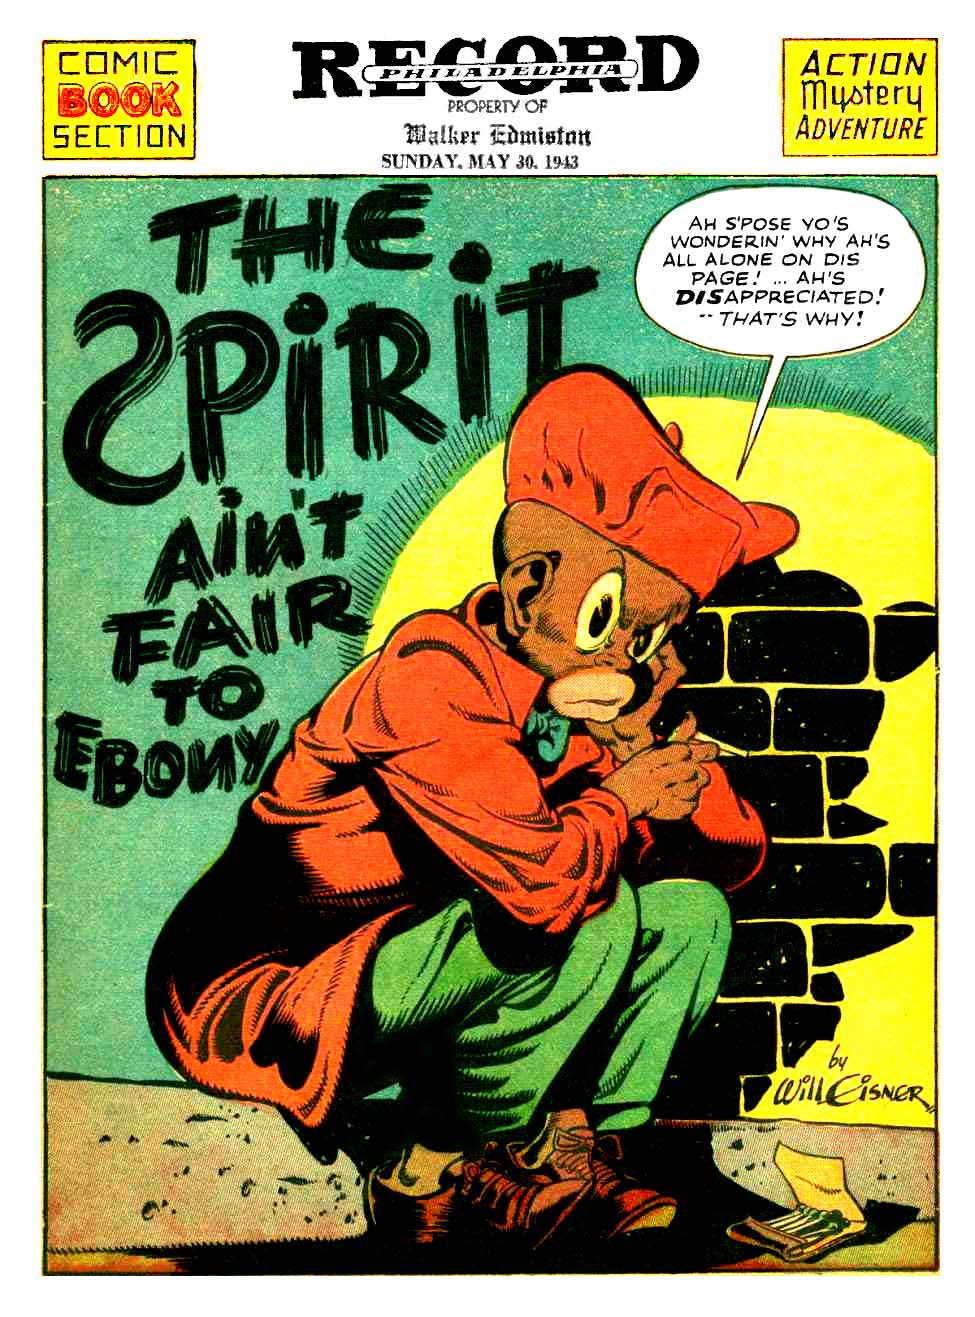 The Spirit (1943-05-30) – Philadelphia Record – Version 2